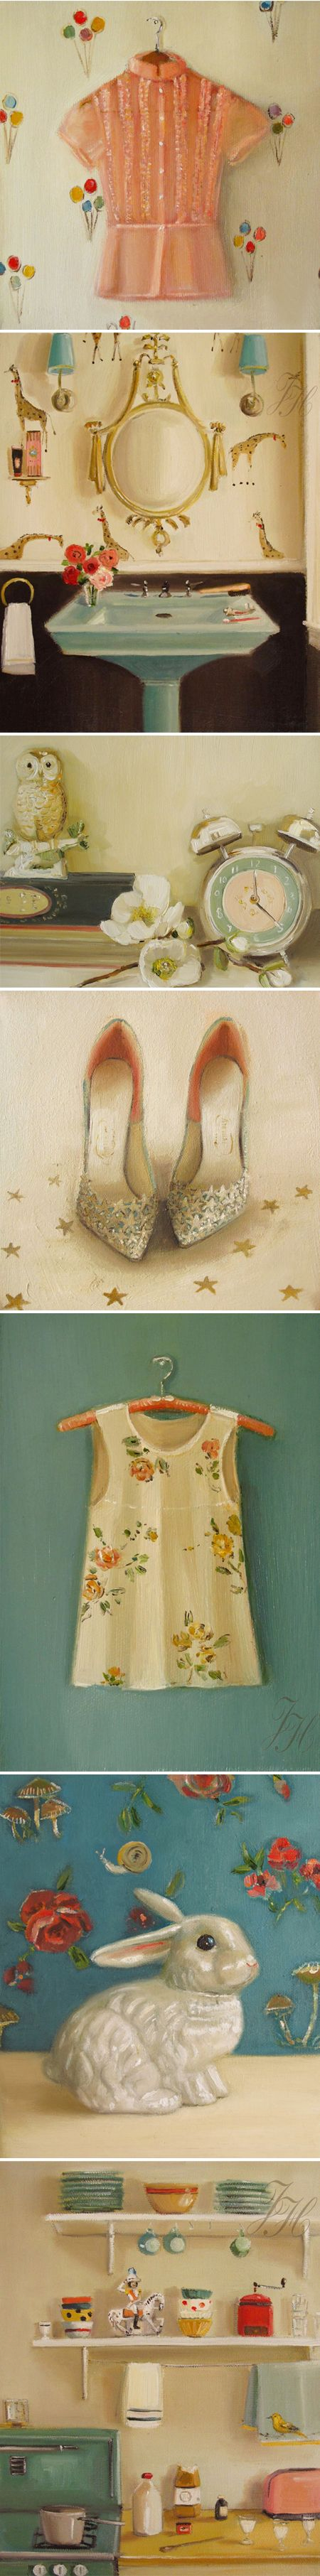 nostalgic paintings by janet hill <3